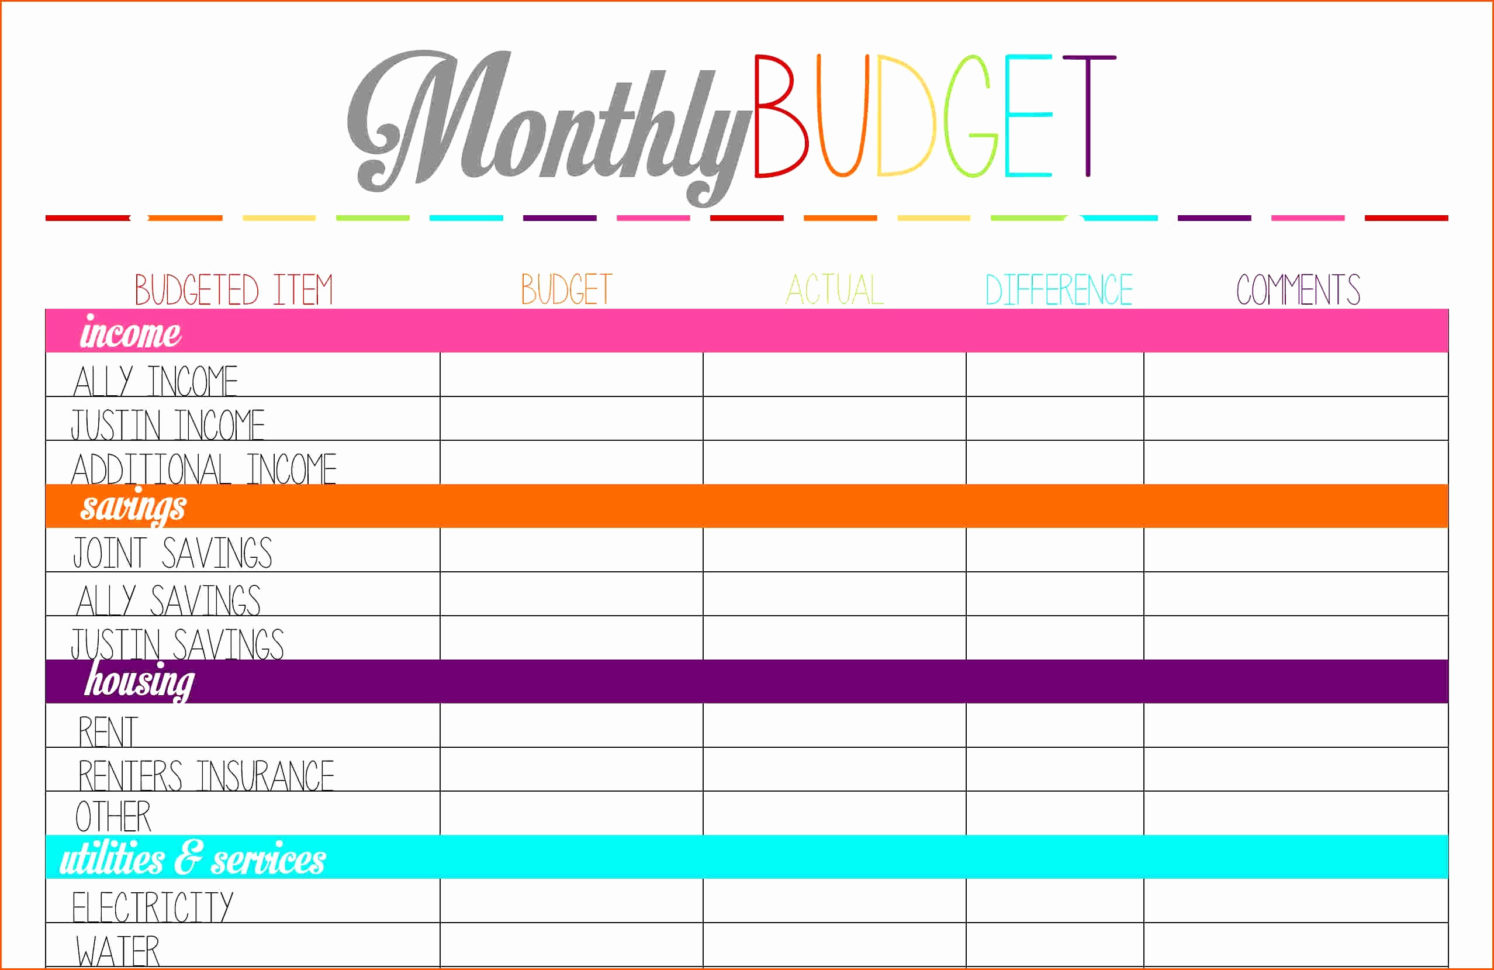 Zero Based Budget Spreadsheet Fresh Household Bud Spreadsheet Simple To How To Make A Household Budget Spreadsheet